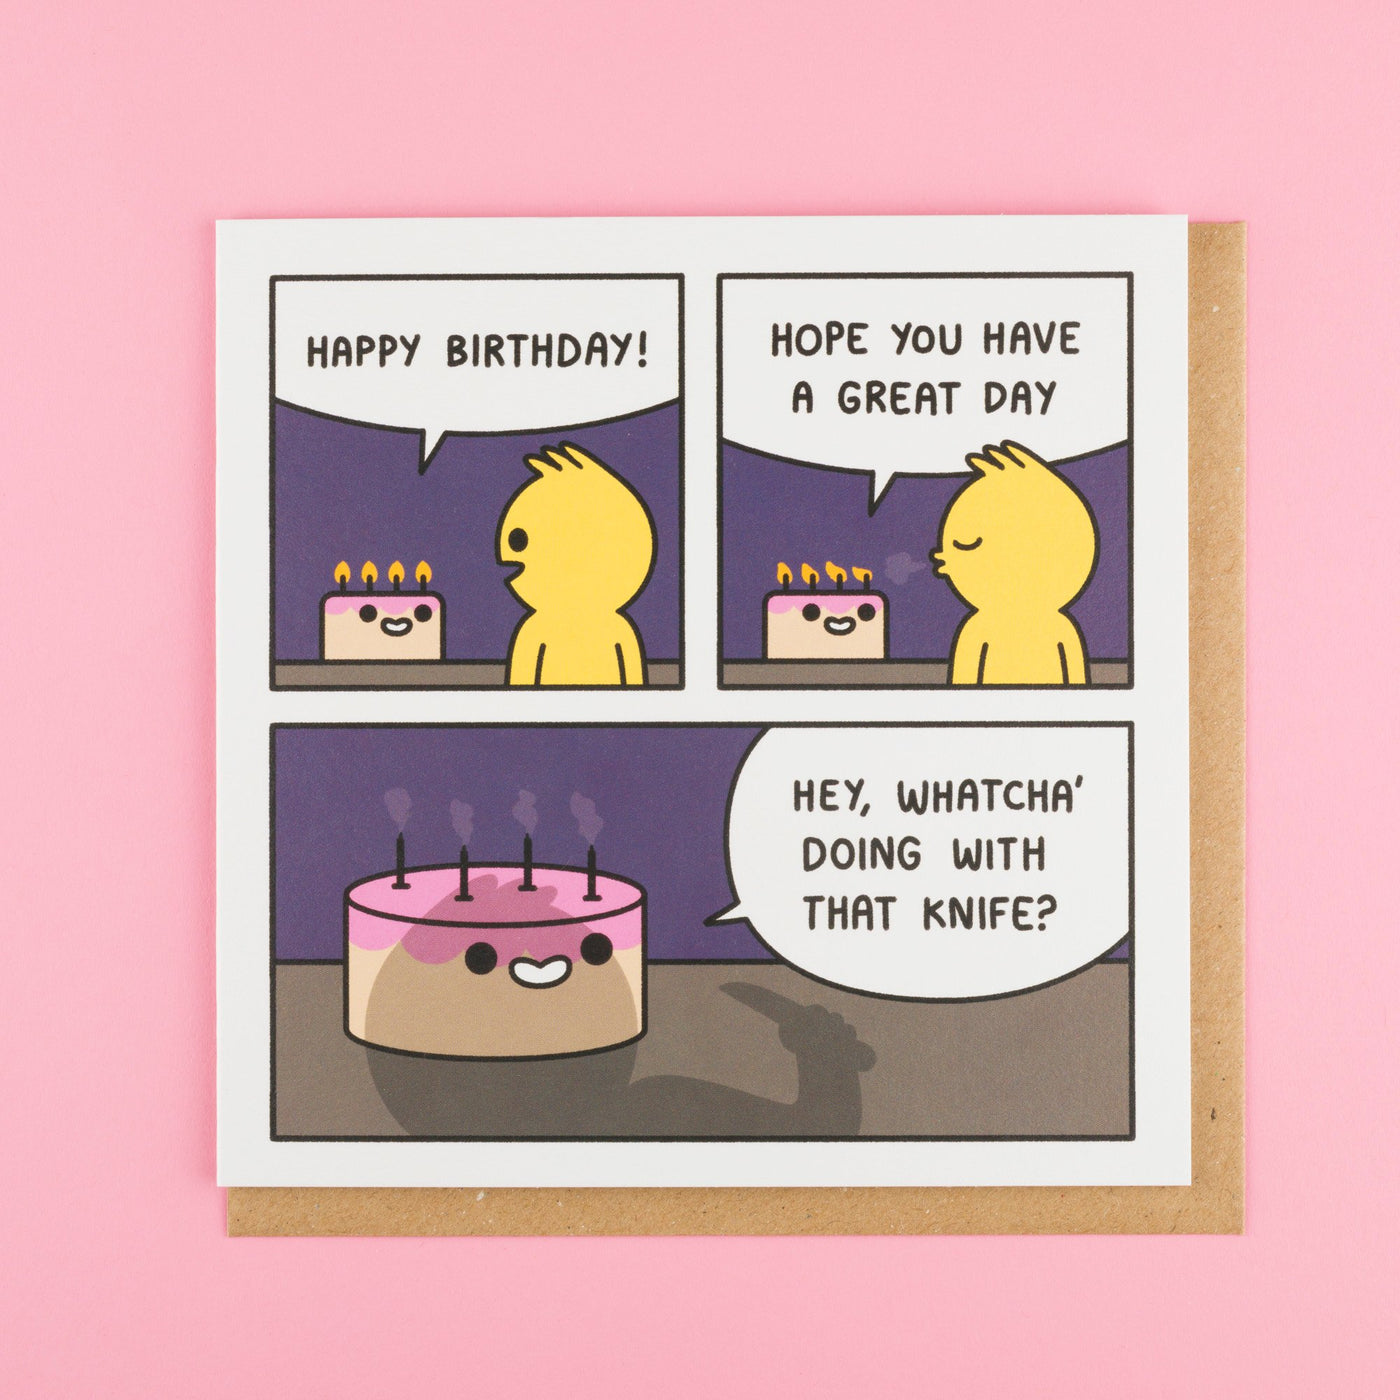 Whatcha' Doing with that Knife Funny Birthday Card